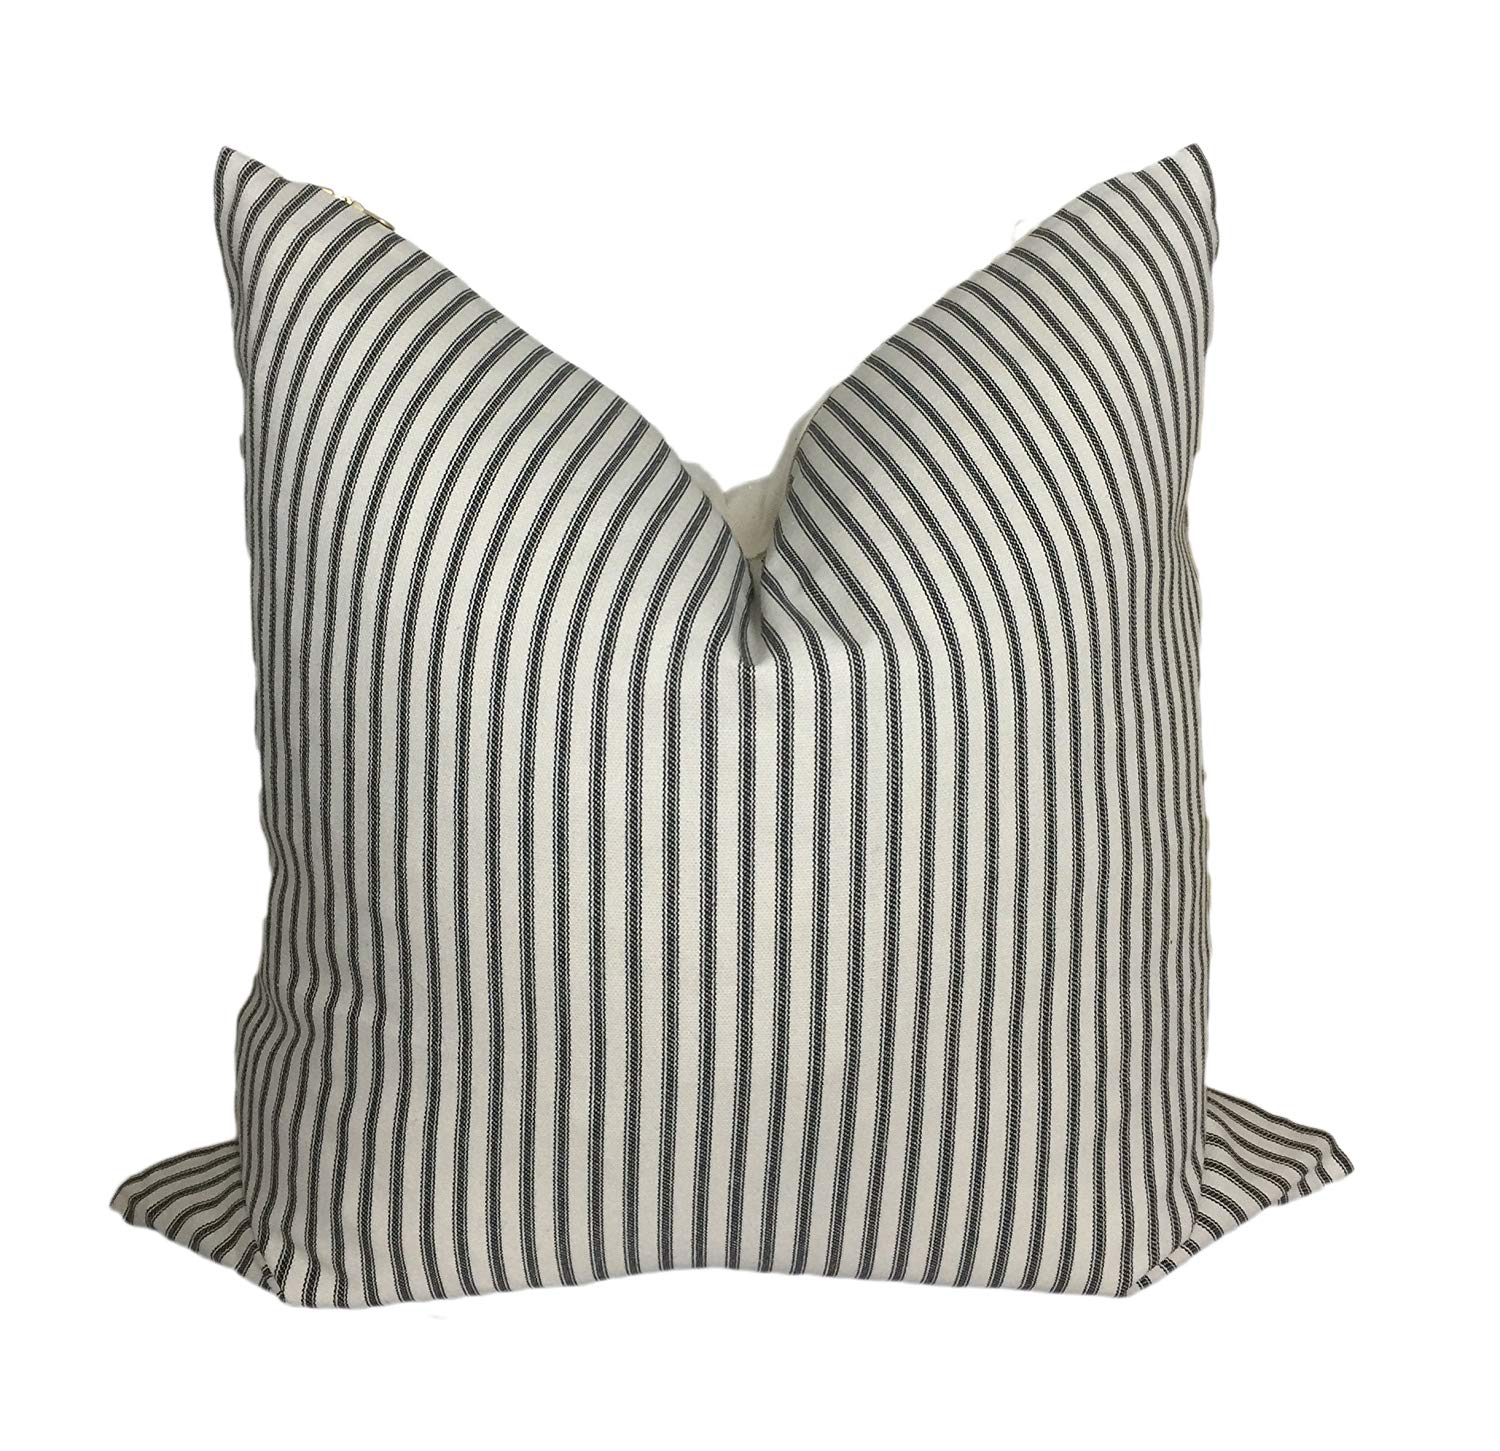 d8b24ff2612c Get Quotations · Ticking Stripe Pillow Cover | Neutral Pillow Covers | Gold  Brass Zipper | Designer Pillow Cover